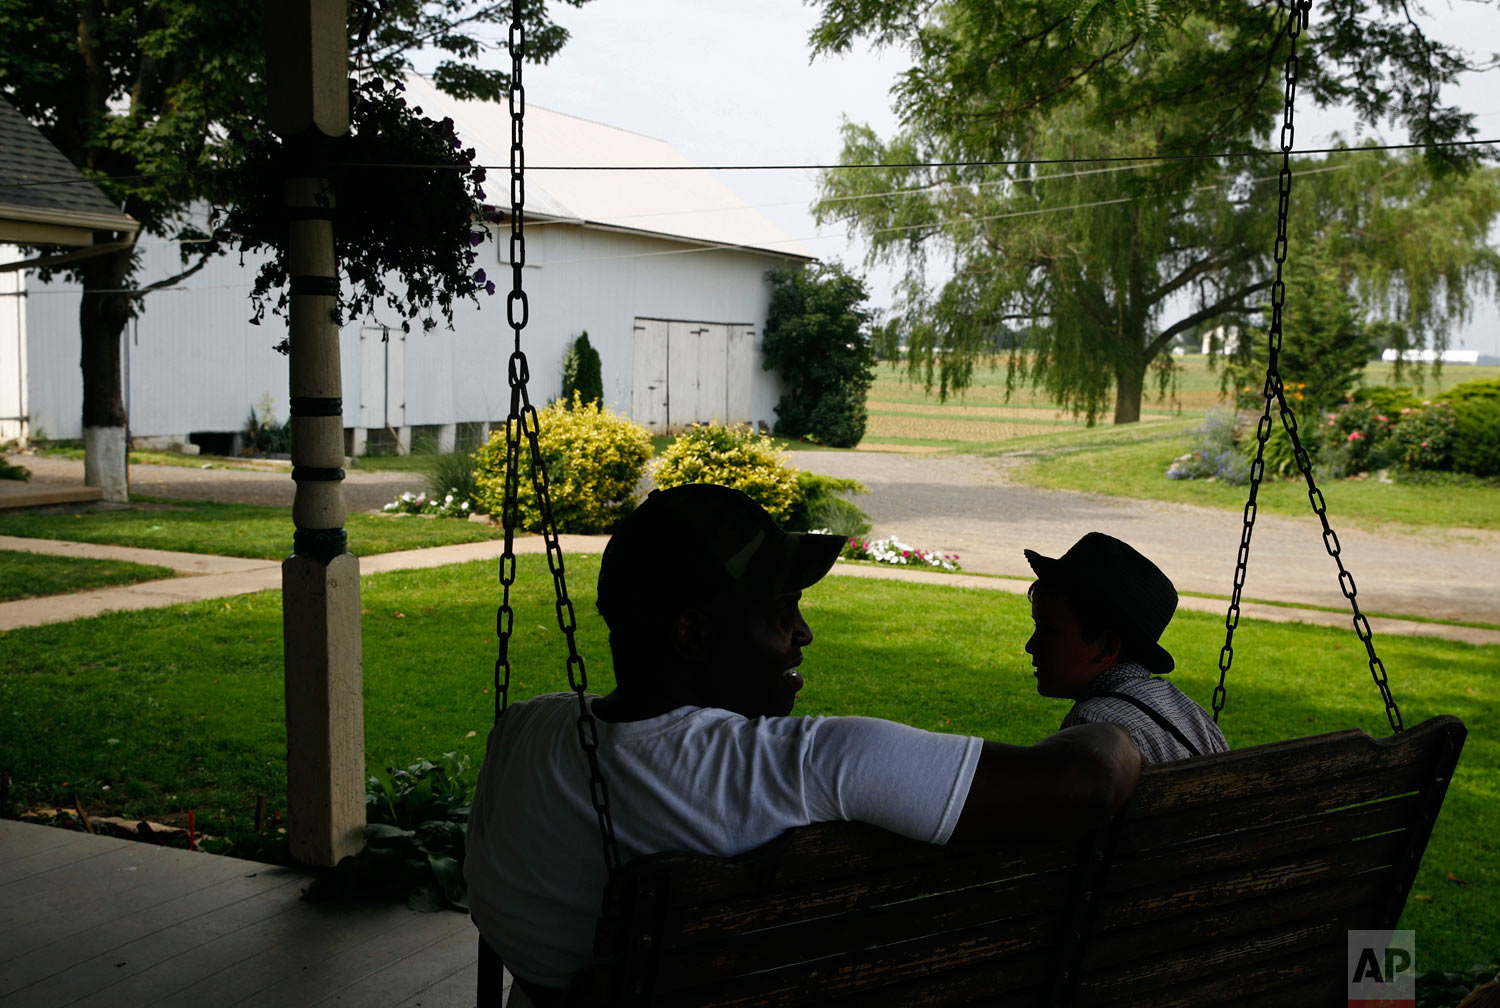 James Chase, left, the leader of a Baltimore arabber stable, visits with a member of an Old Order Mennonite family on June 18, 2018, at the family's farm in New Holland, Pennsylvania. (AP Photo/Patrick Semansky)